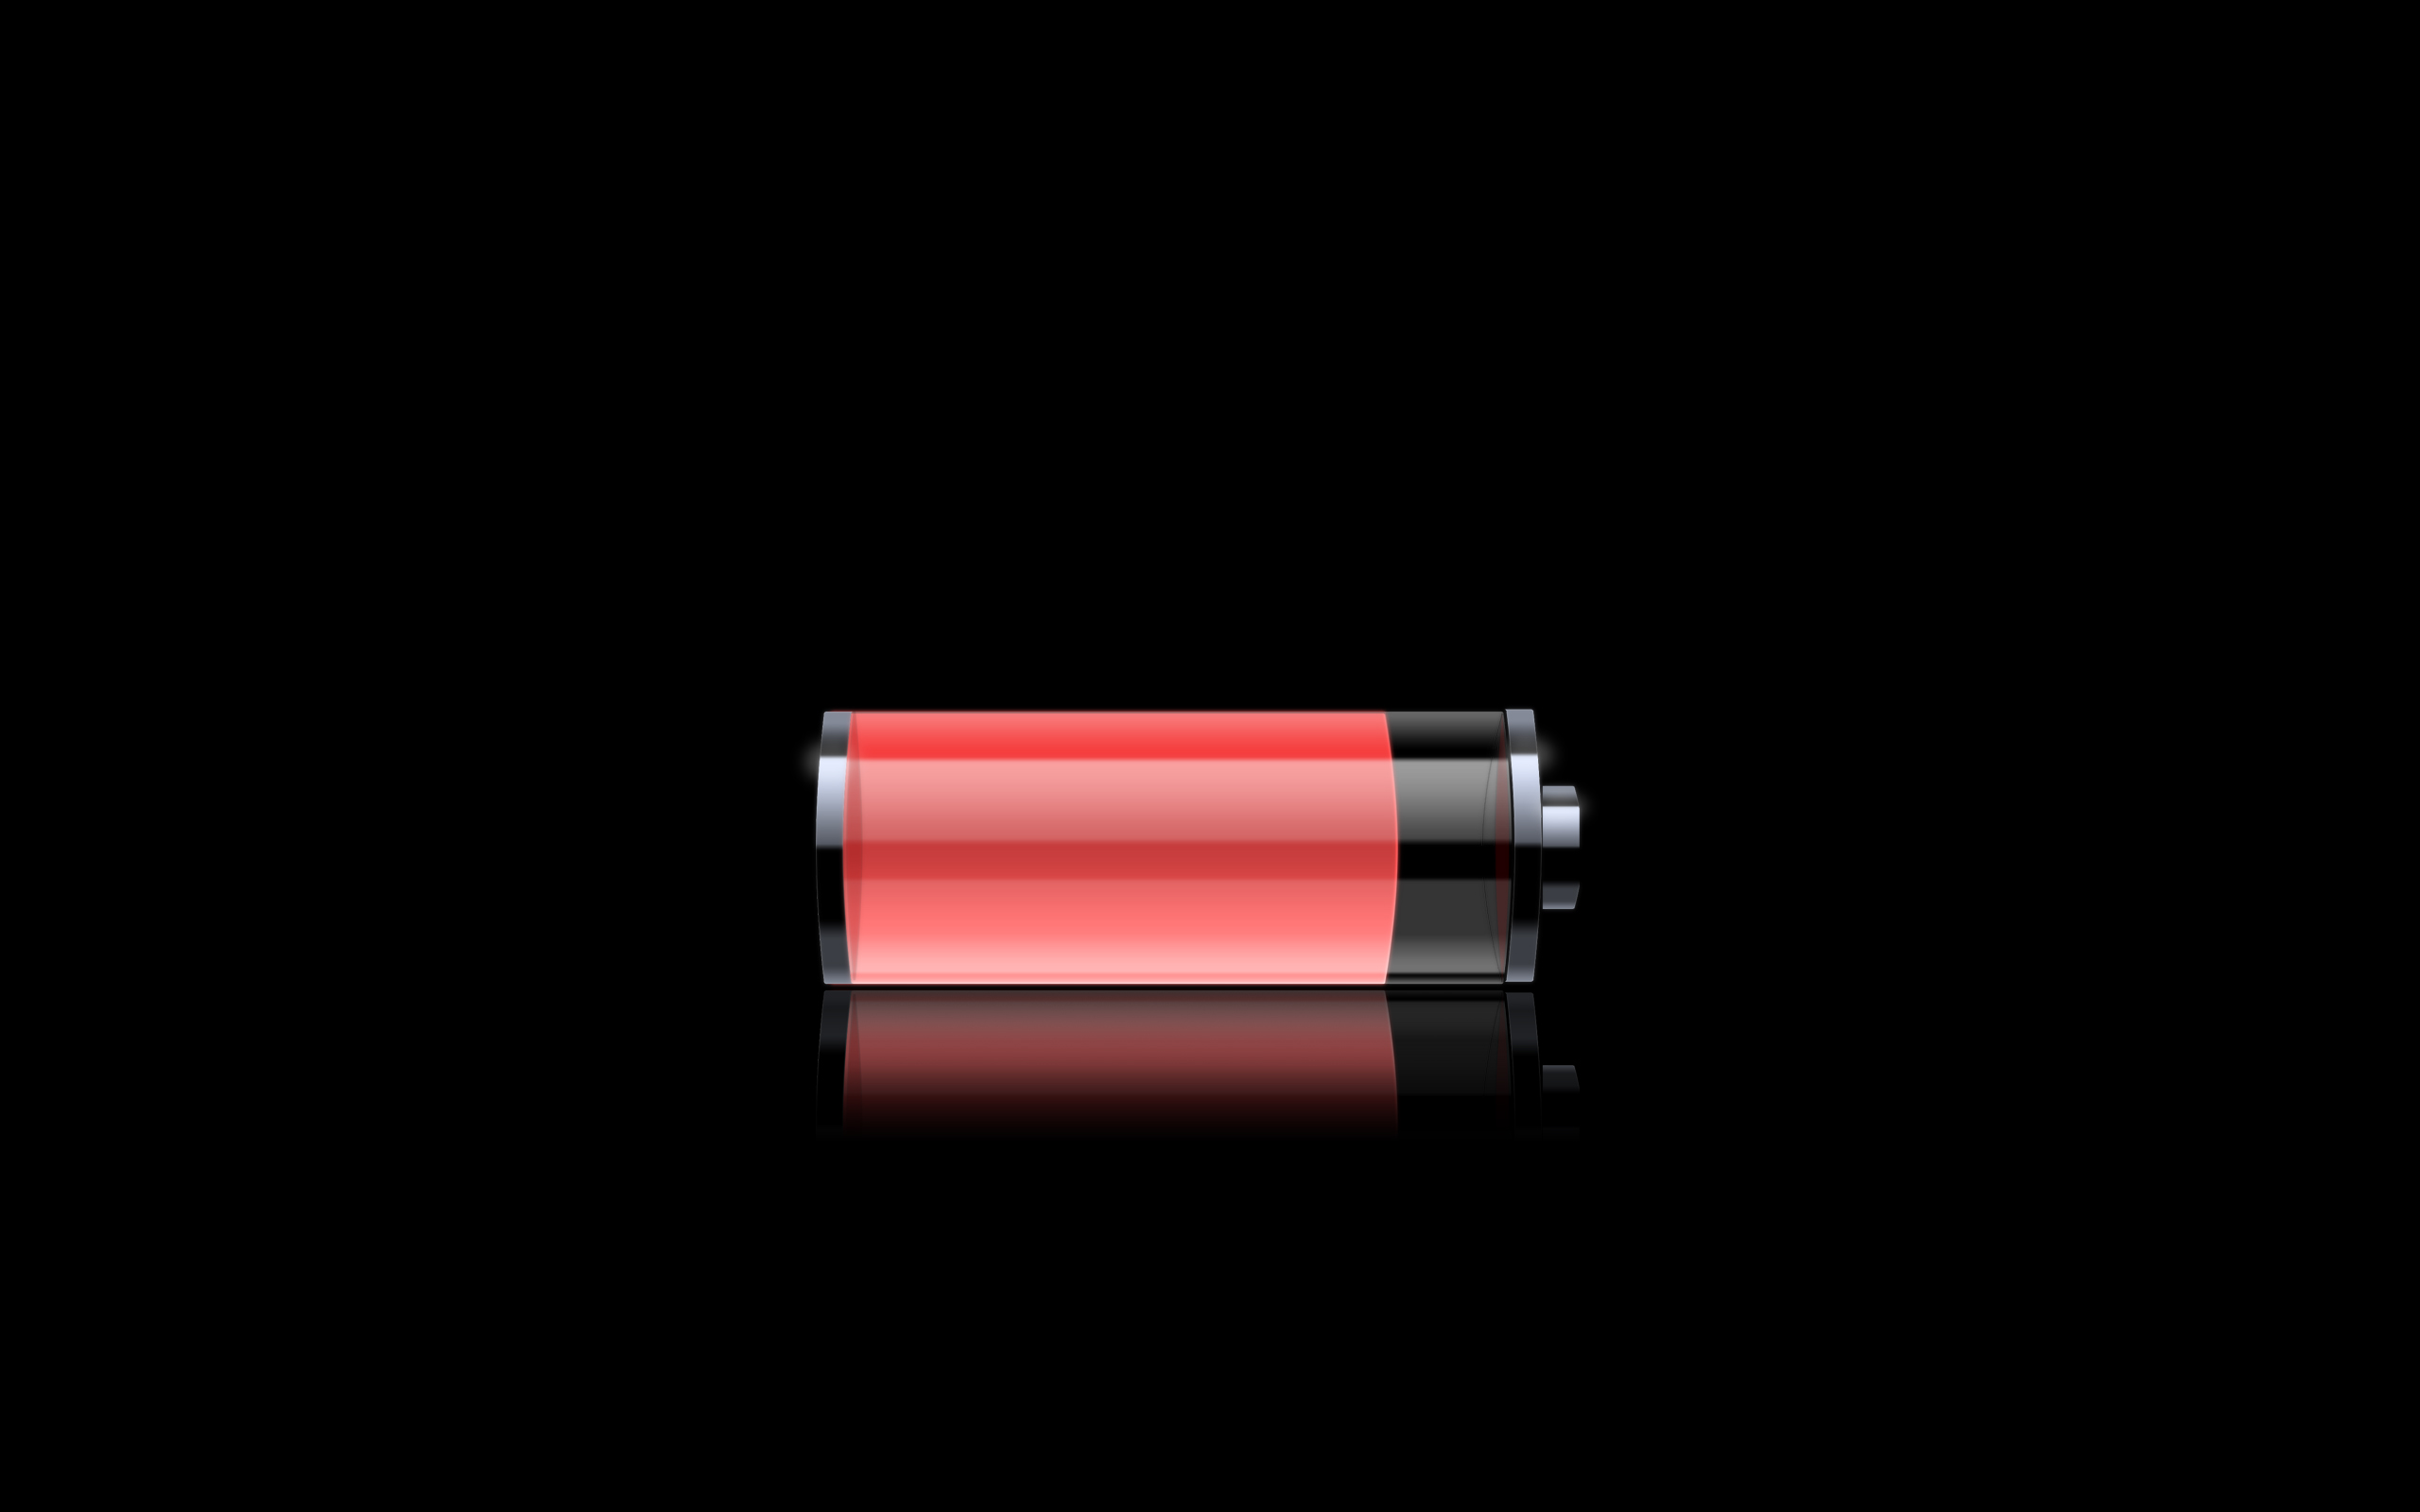 Battery HD Wallpapers | Backgrounds